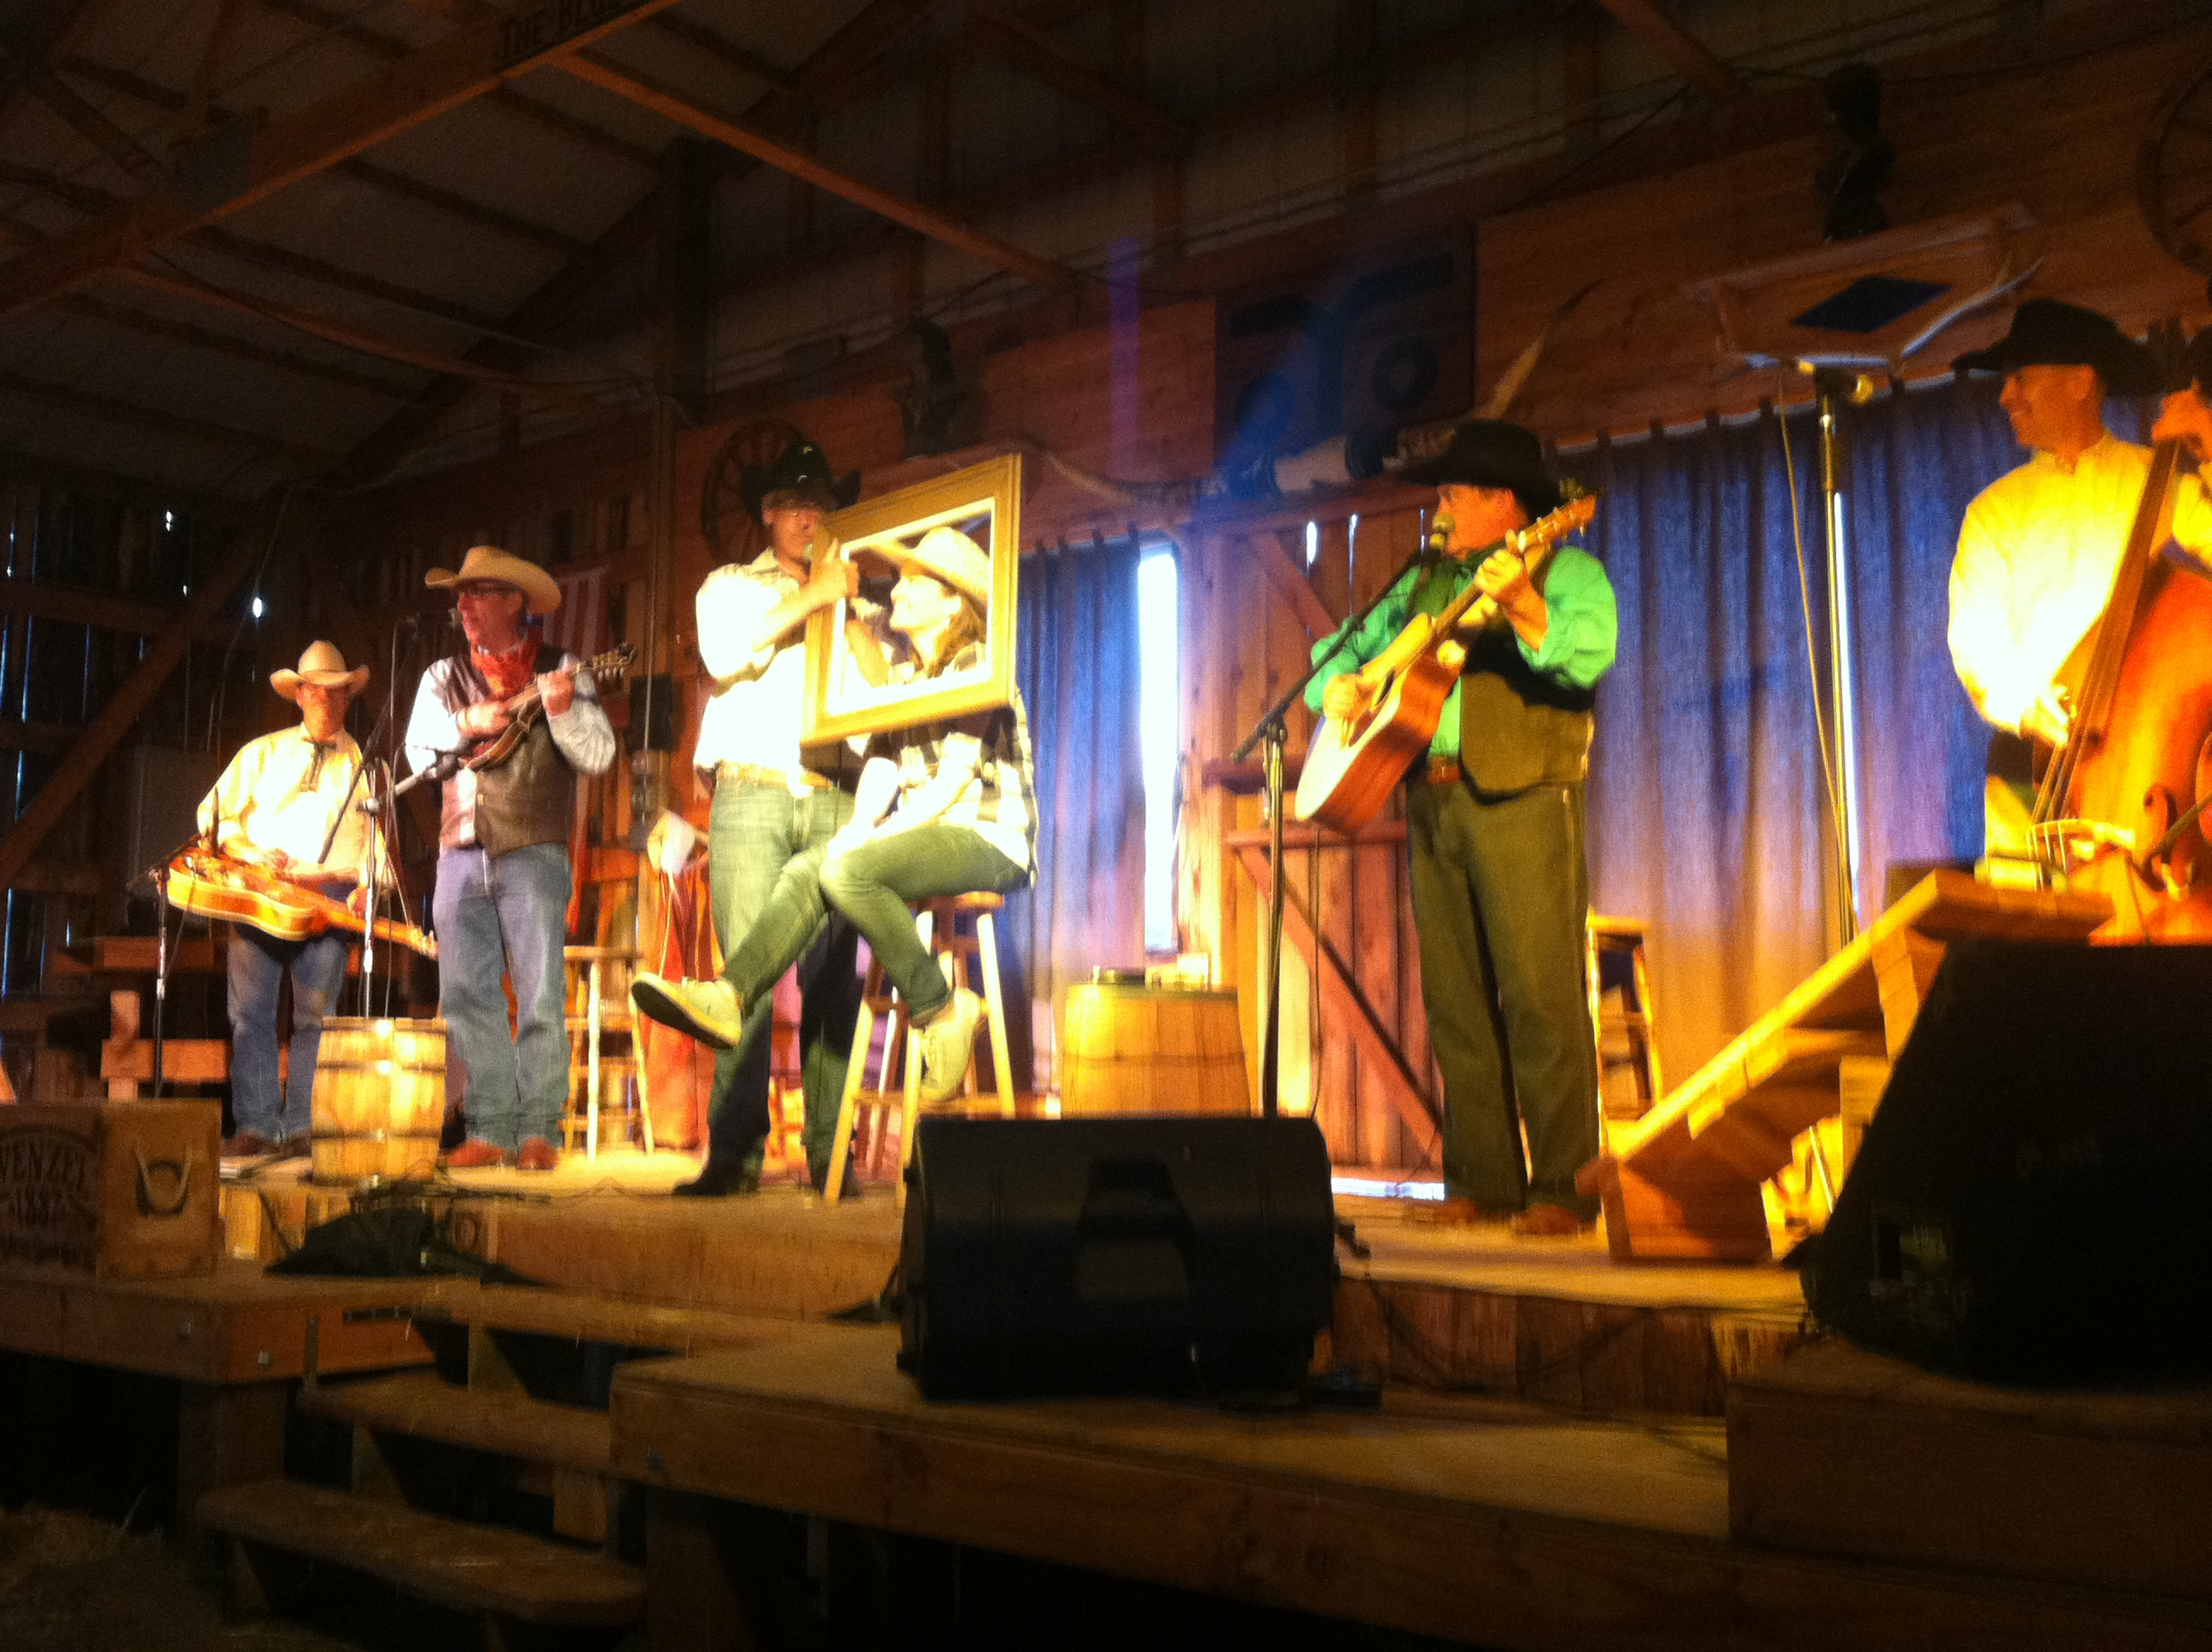 The horse-barn dinner show at Bit-O-Wyo Ranch